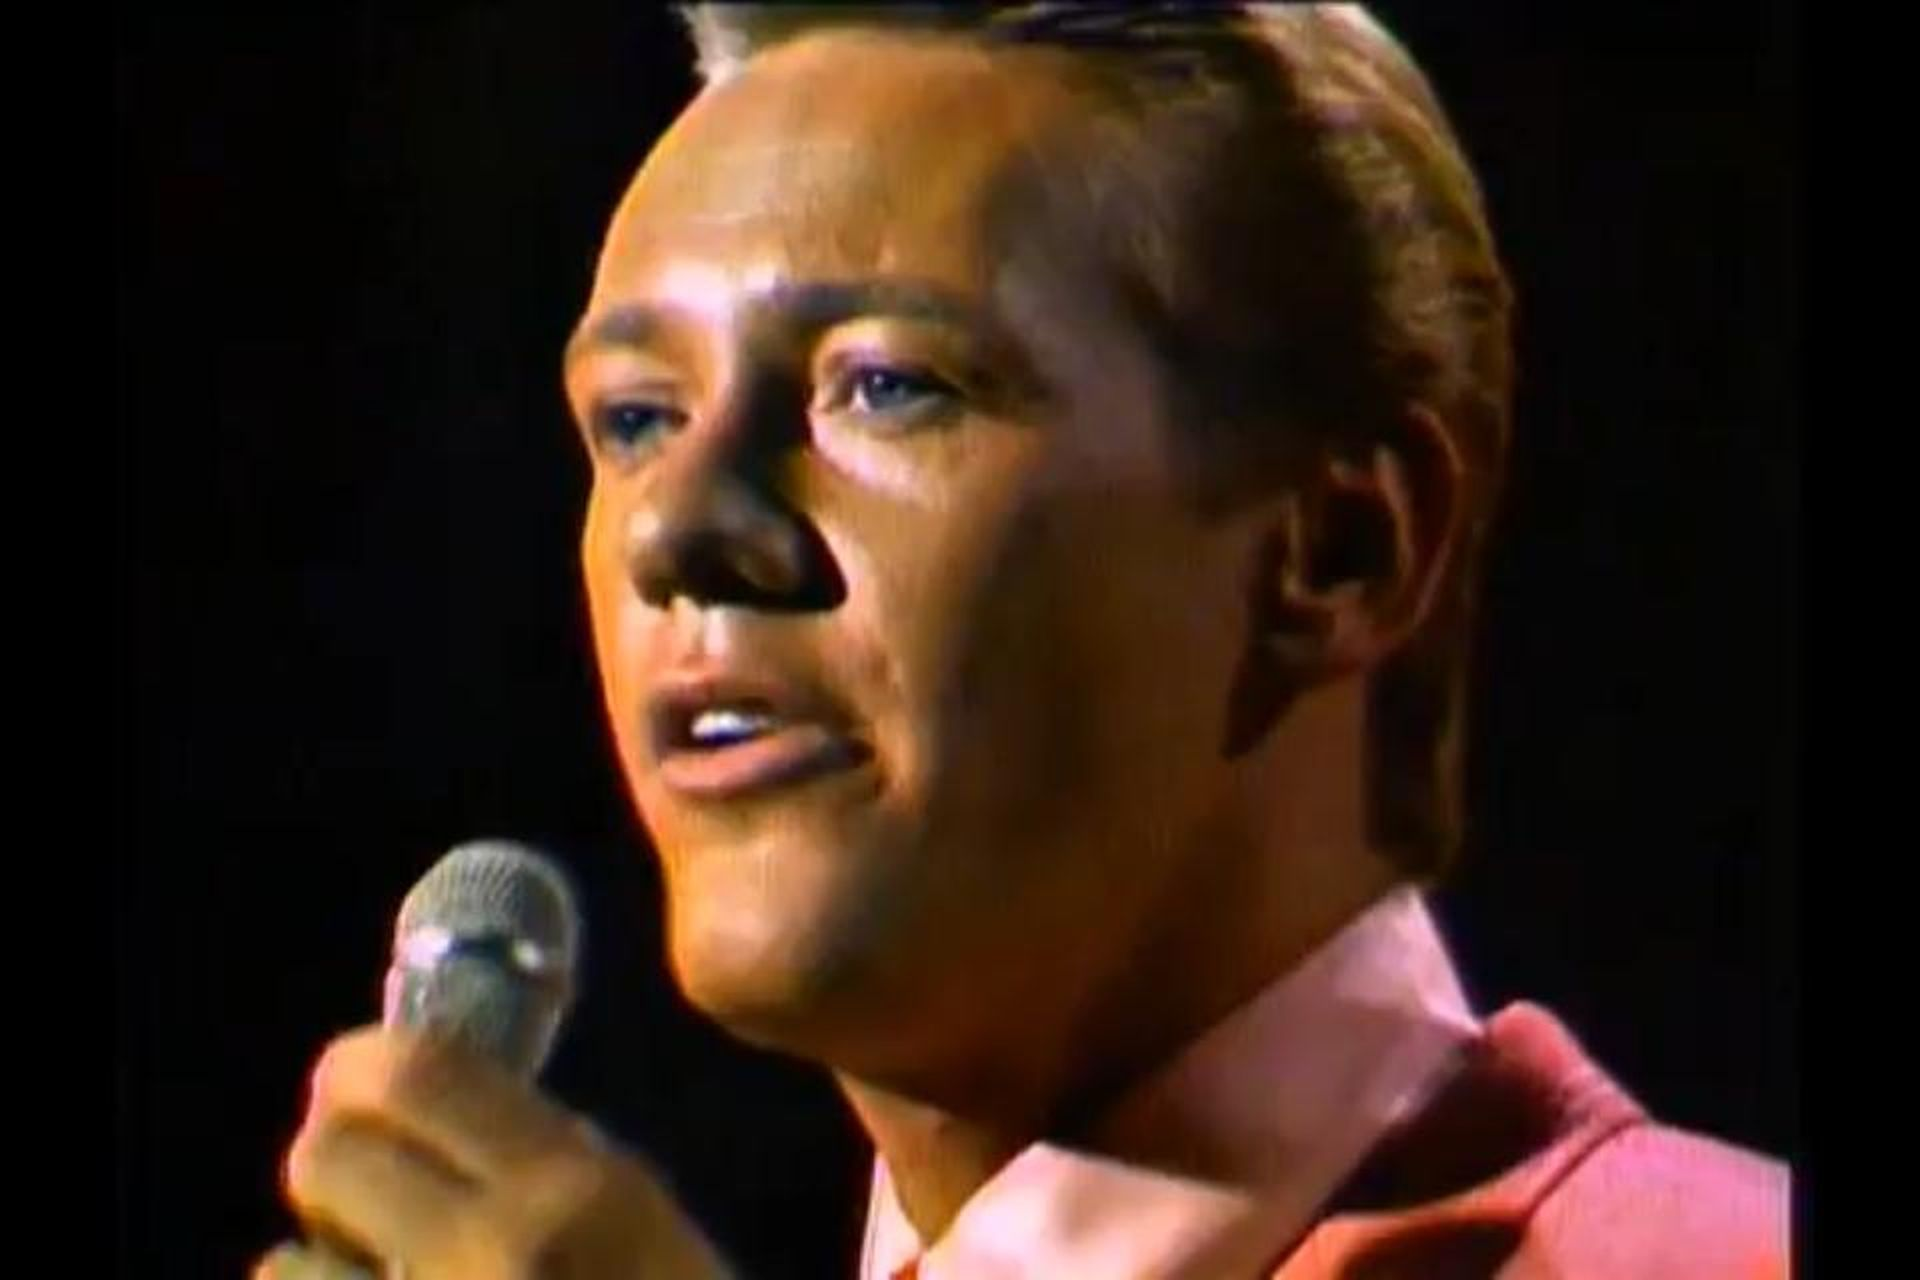 Bobby Hatfield in The Andy Williams Show (1962)